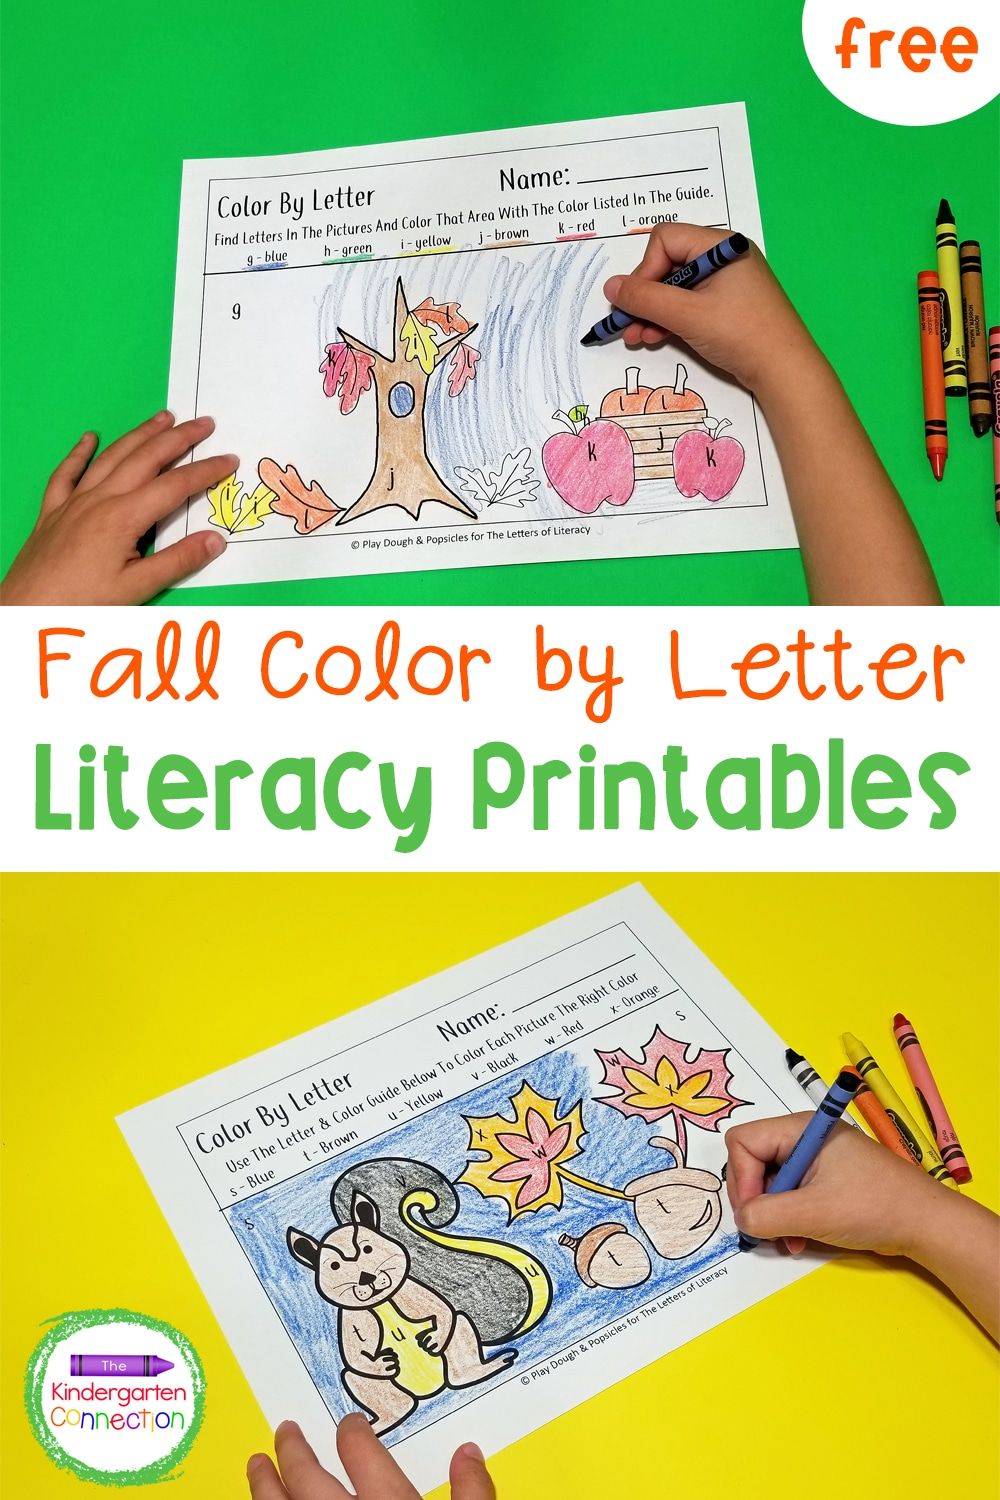 Enjoy practicing the alphabet with these free Fall Color by Letter printables! Grow alphabet recognition and celebrate autumn together!